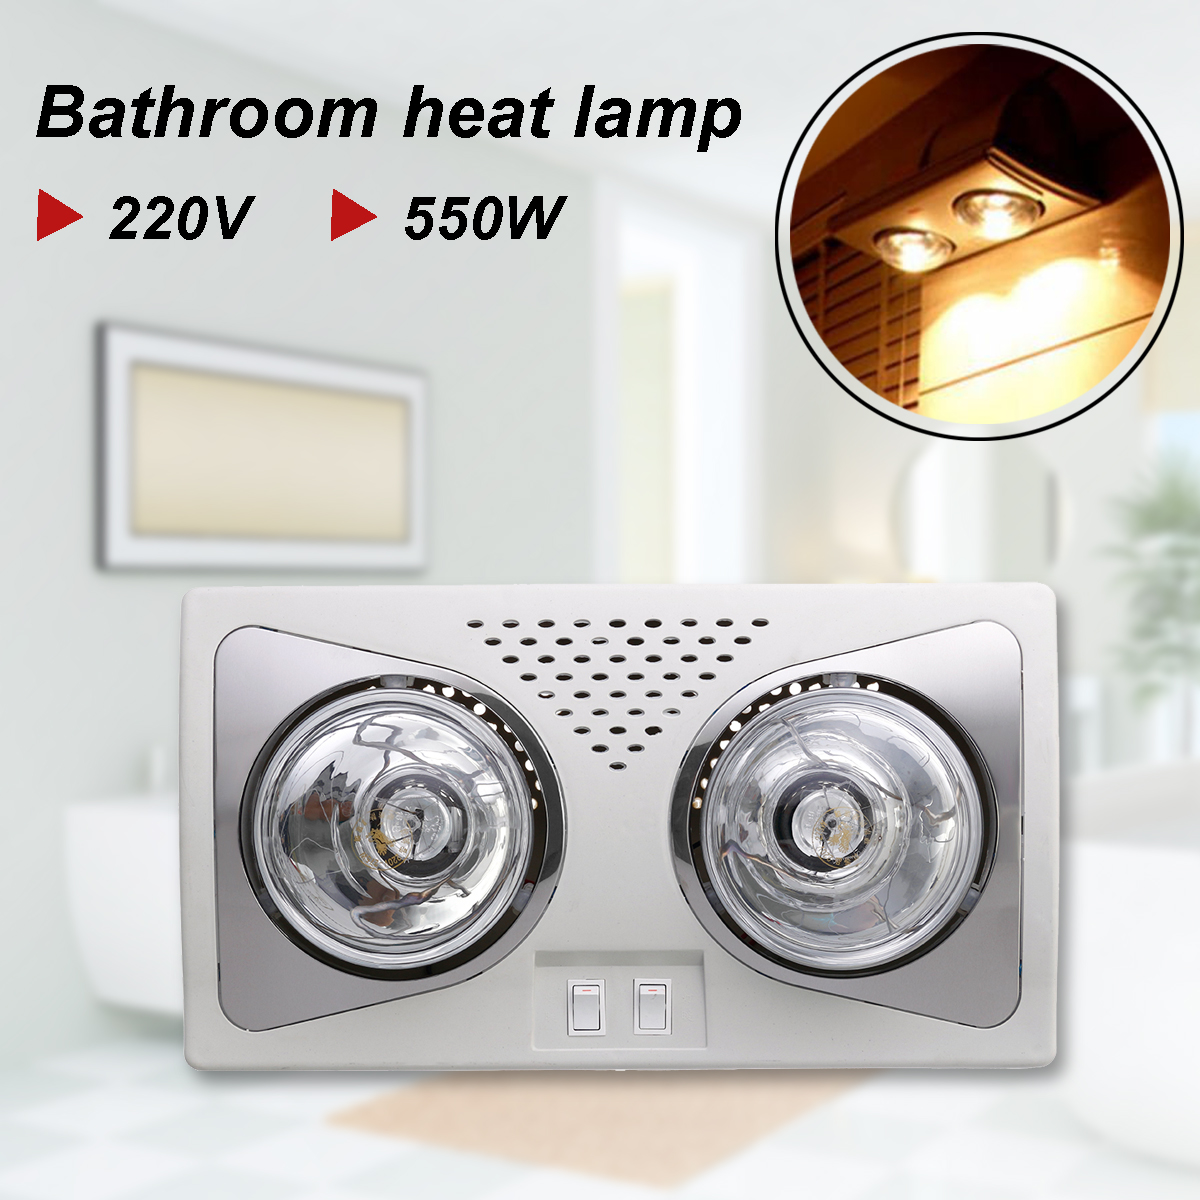 550w Bathroom Ceiling Light Heater Bath 2 Heat Lamp Fan